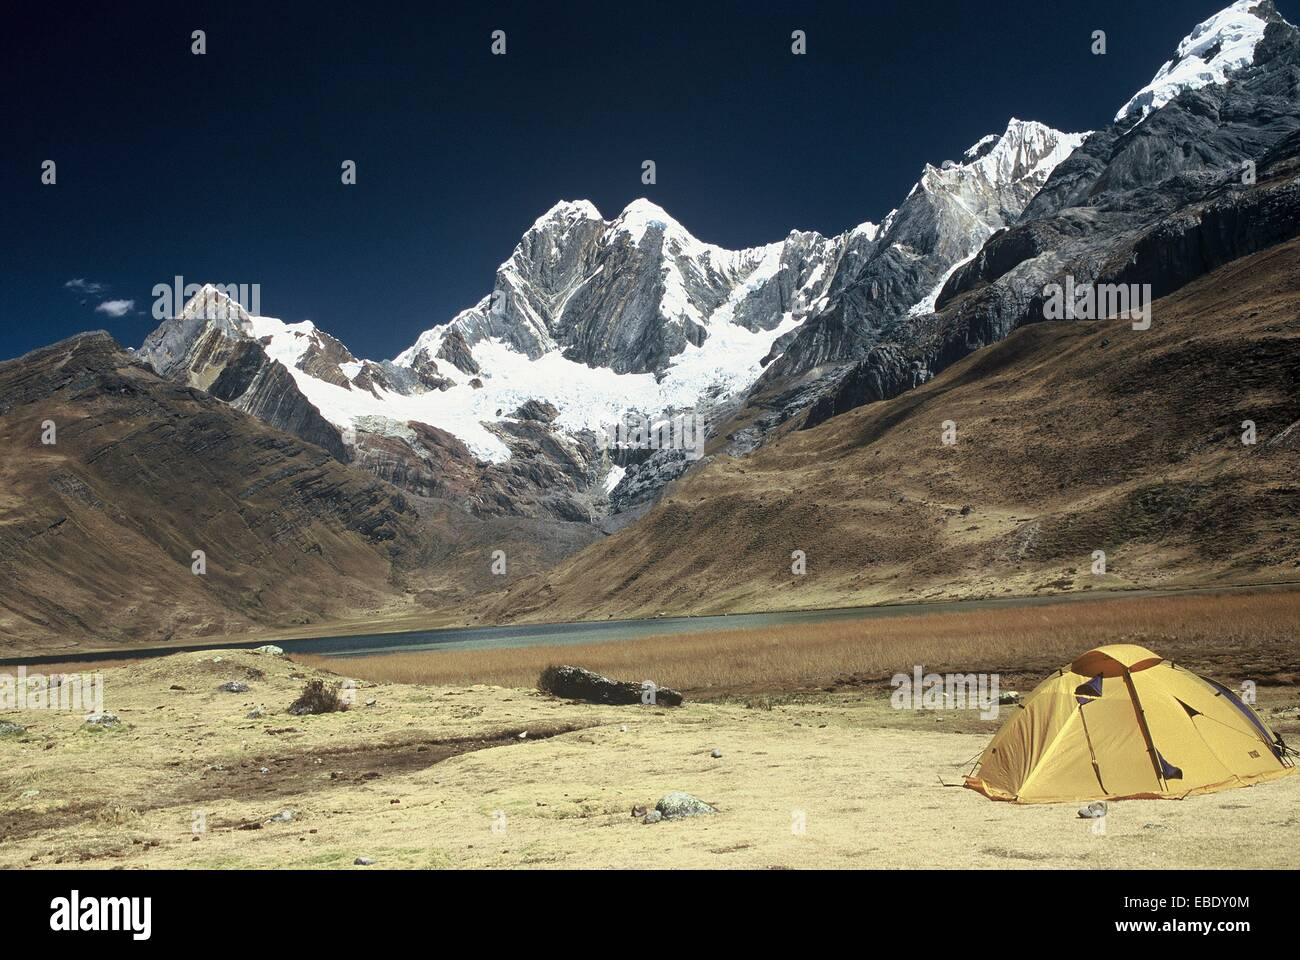 Mount Jirishanca 6094 meters, in the range of Huayhuash, from the lagoon Mitucocha, the Andes. Peru. - Stock Image